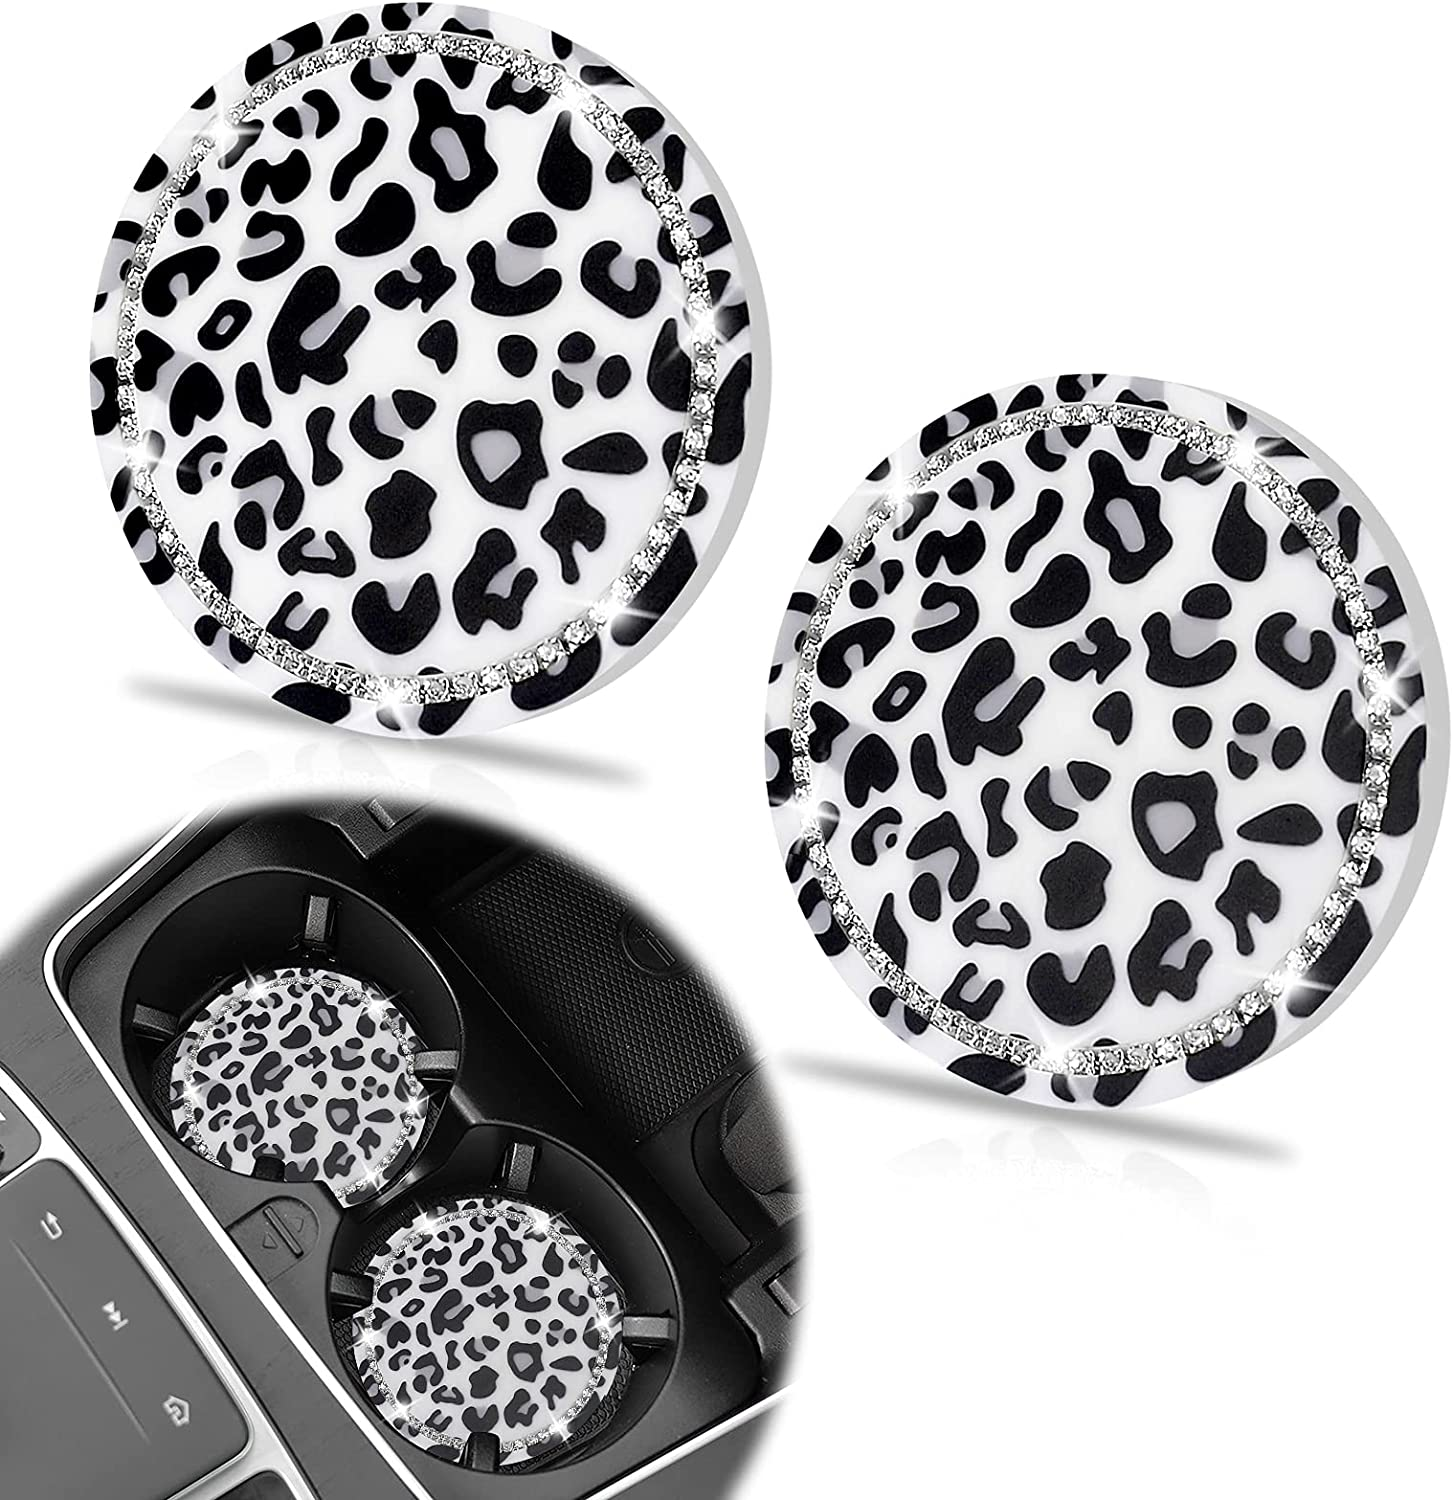 cheap 2 Pack Car Coasters SHANSHUI for Denver Mall Cute Bling Cup Ho